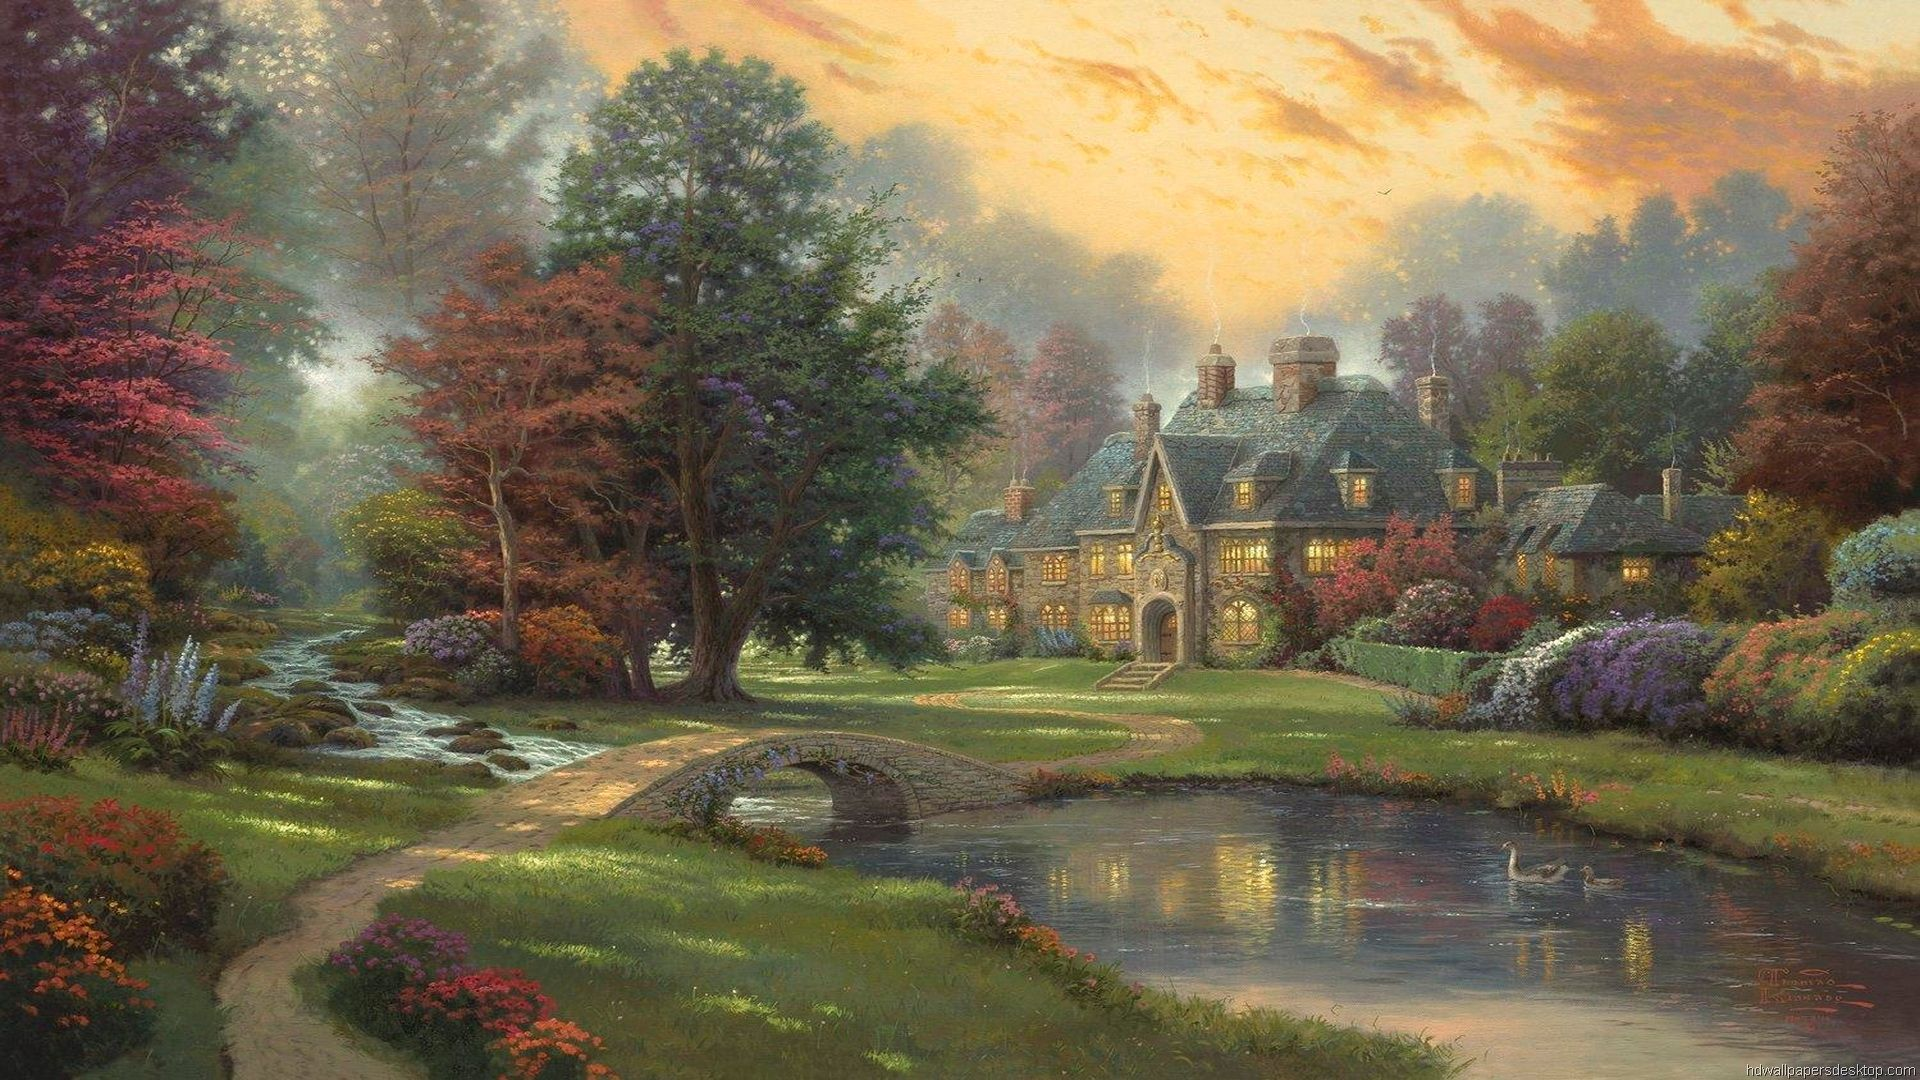 Thomas kinkade hd paintings art wallpaper 1920 1080 art for Prints of famous paintings for sale